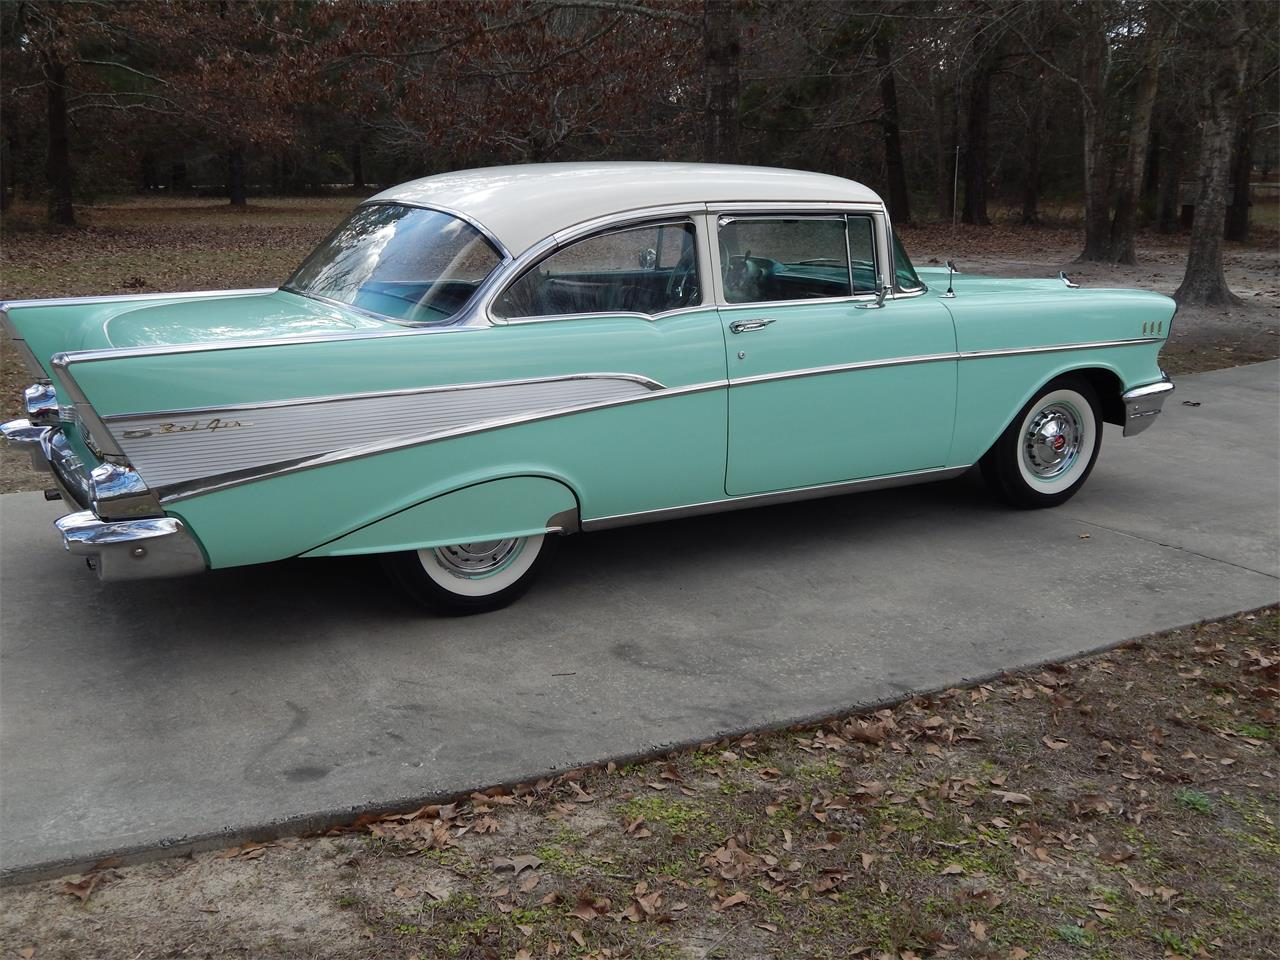 1957 Chevrolet Bel Air for sale in Online, Online Auction – photo 4